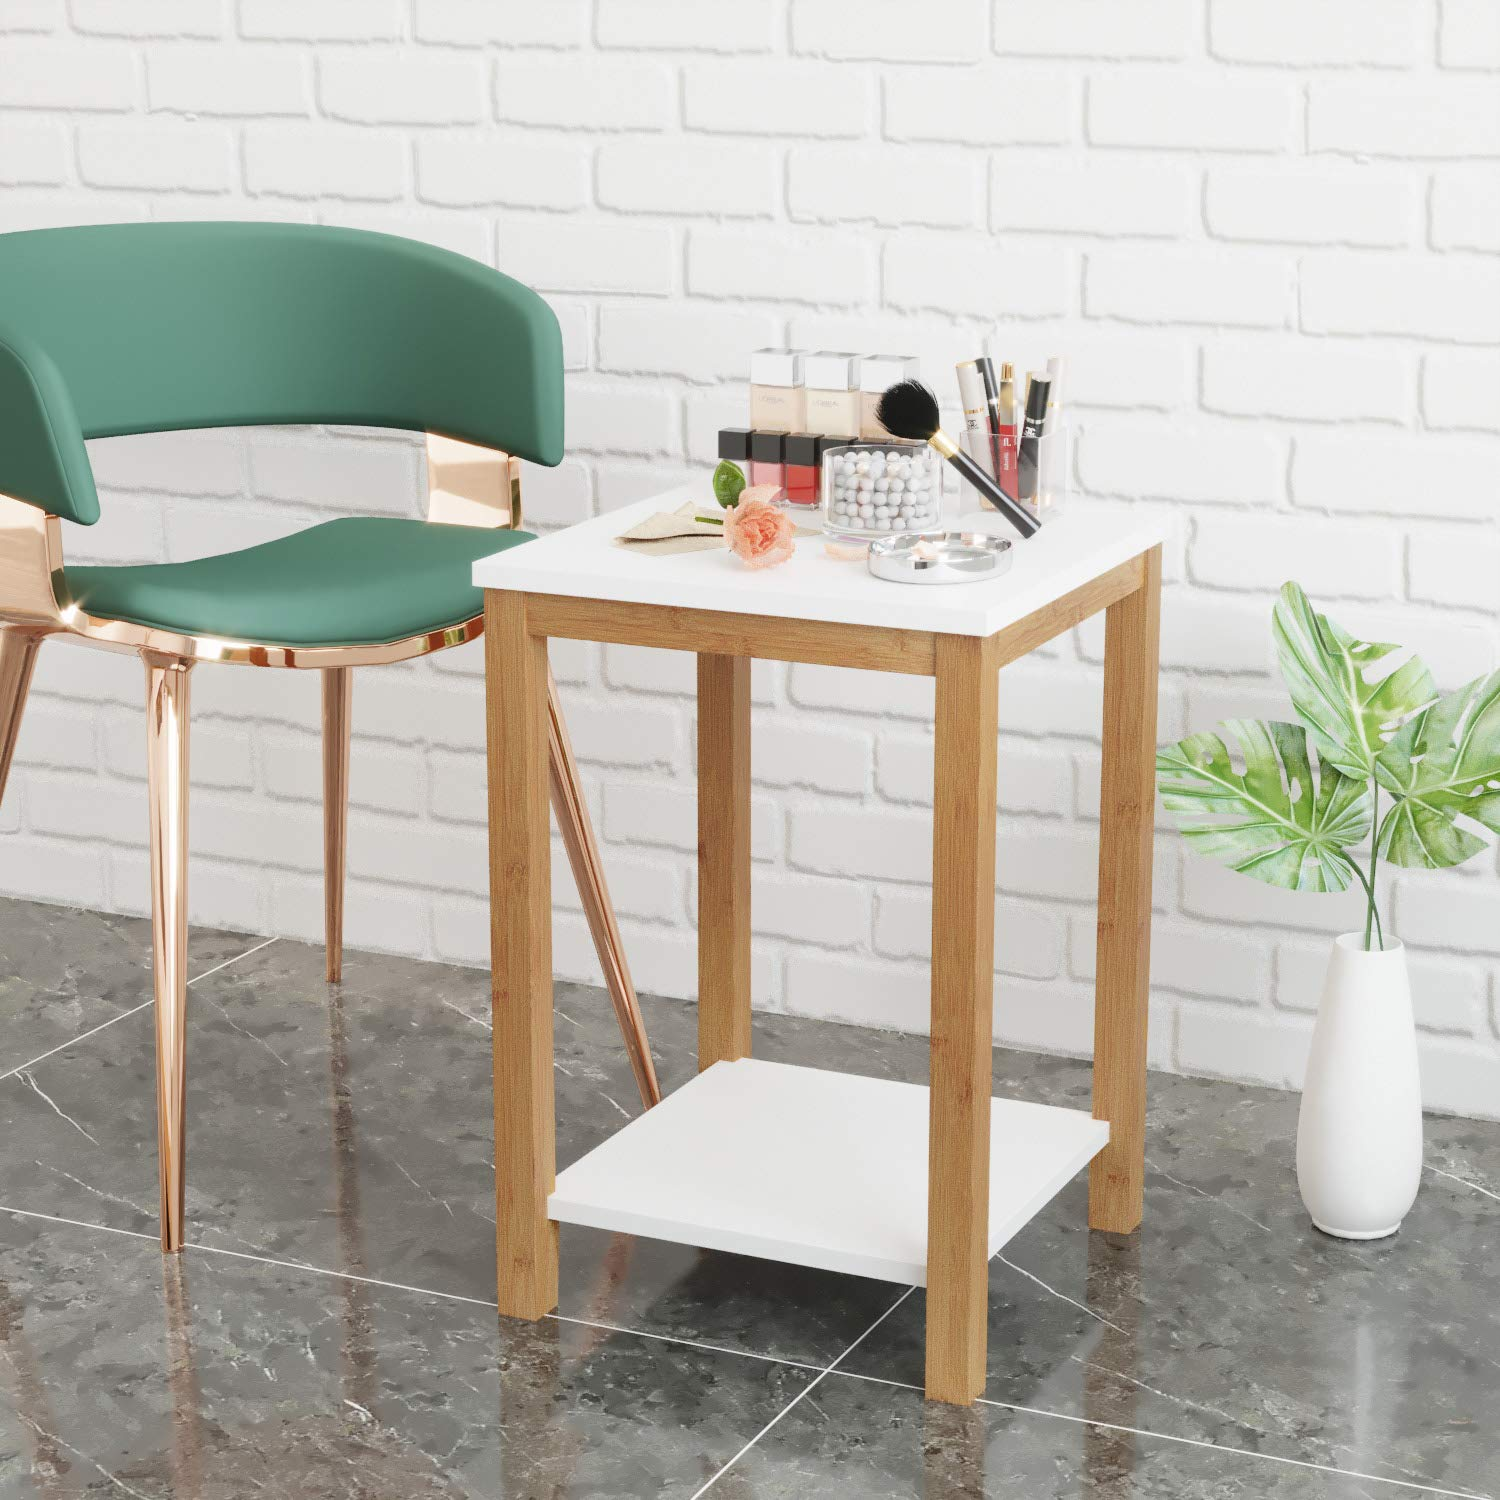 BAMEOS Side Table Modern Industrial End Table, 2-Tier Side Table with Storage Shelf, Accent Coffee Table for Living Room Bedroom Balcony Family and Office in White Color by BAMEOS